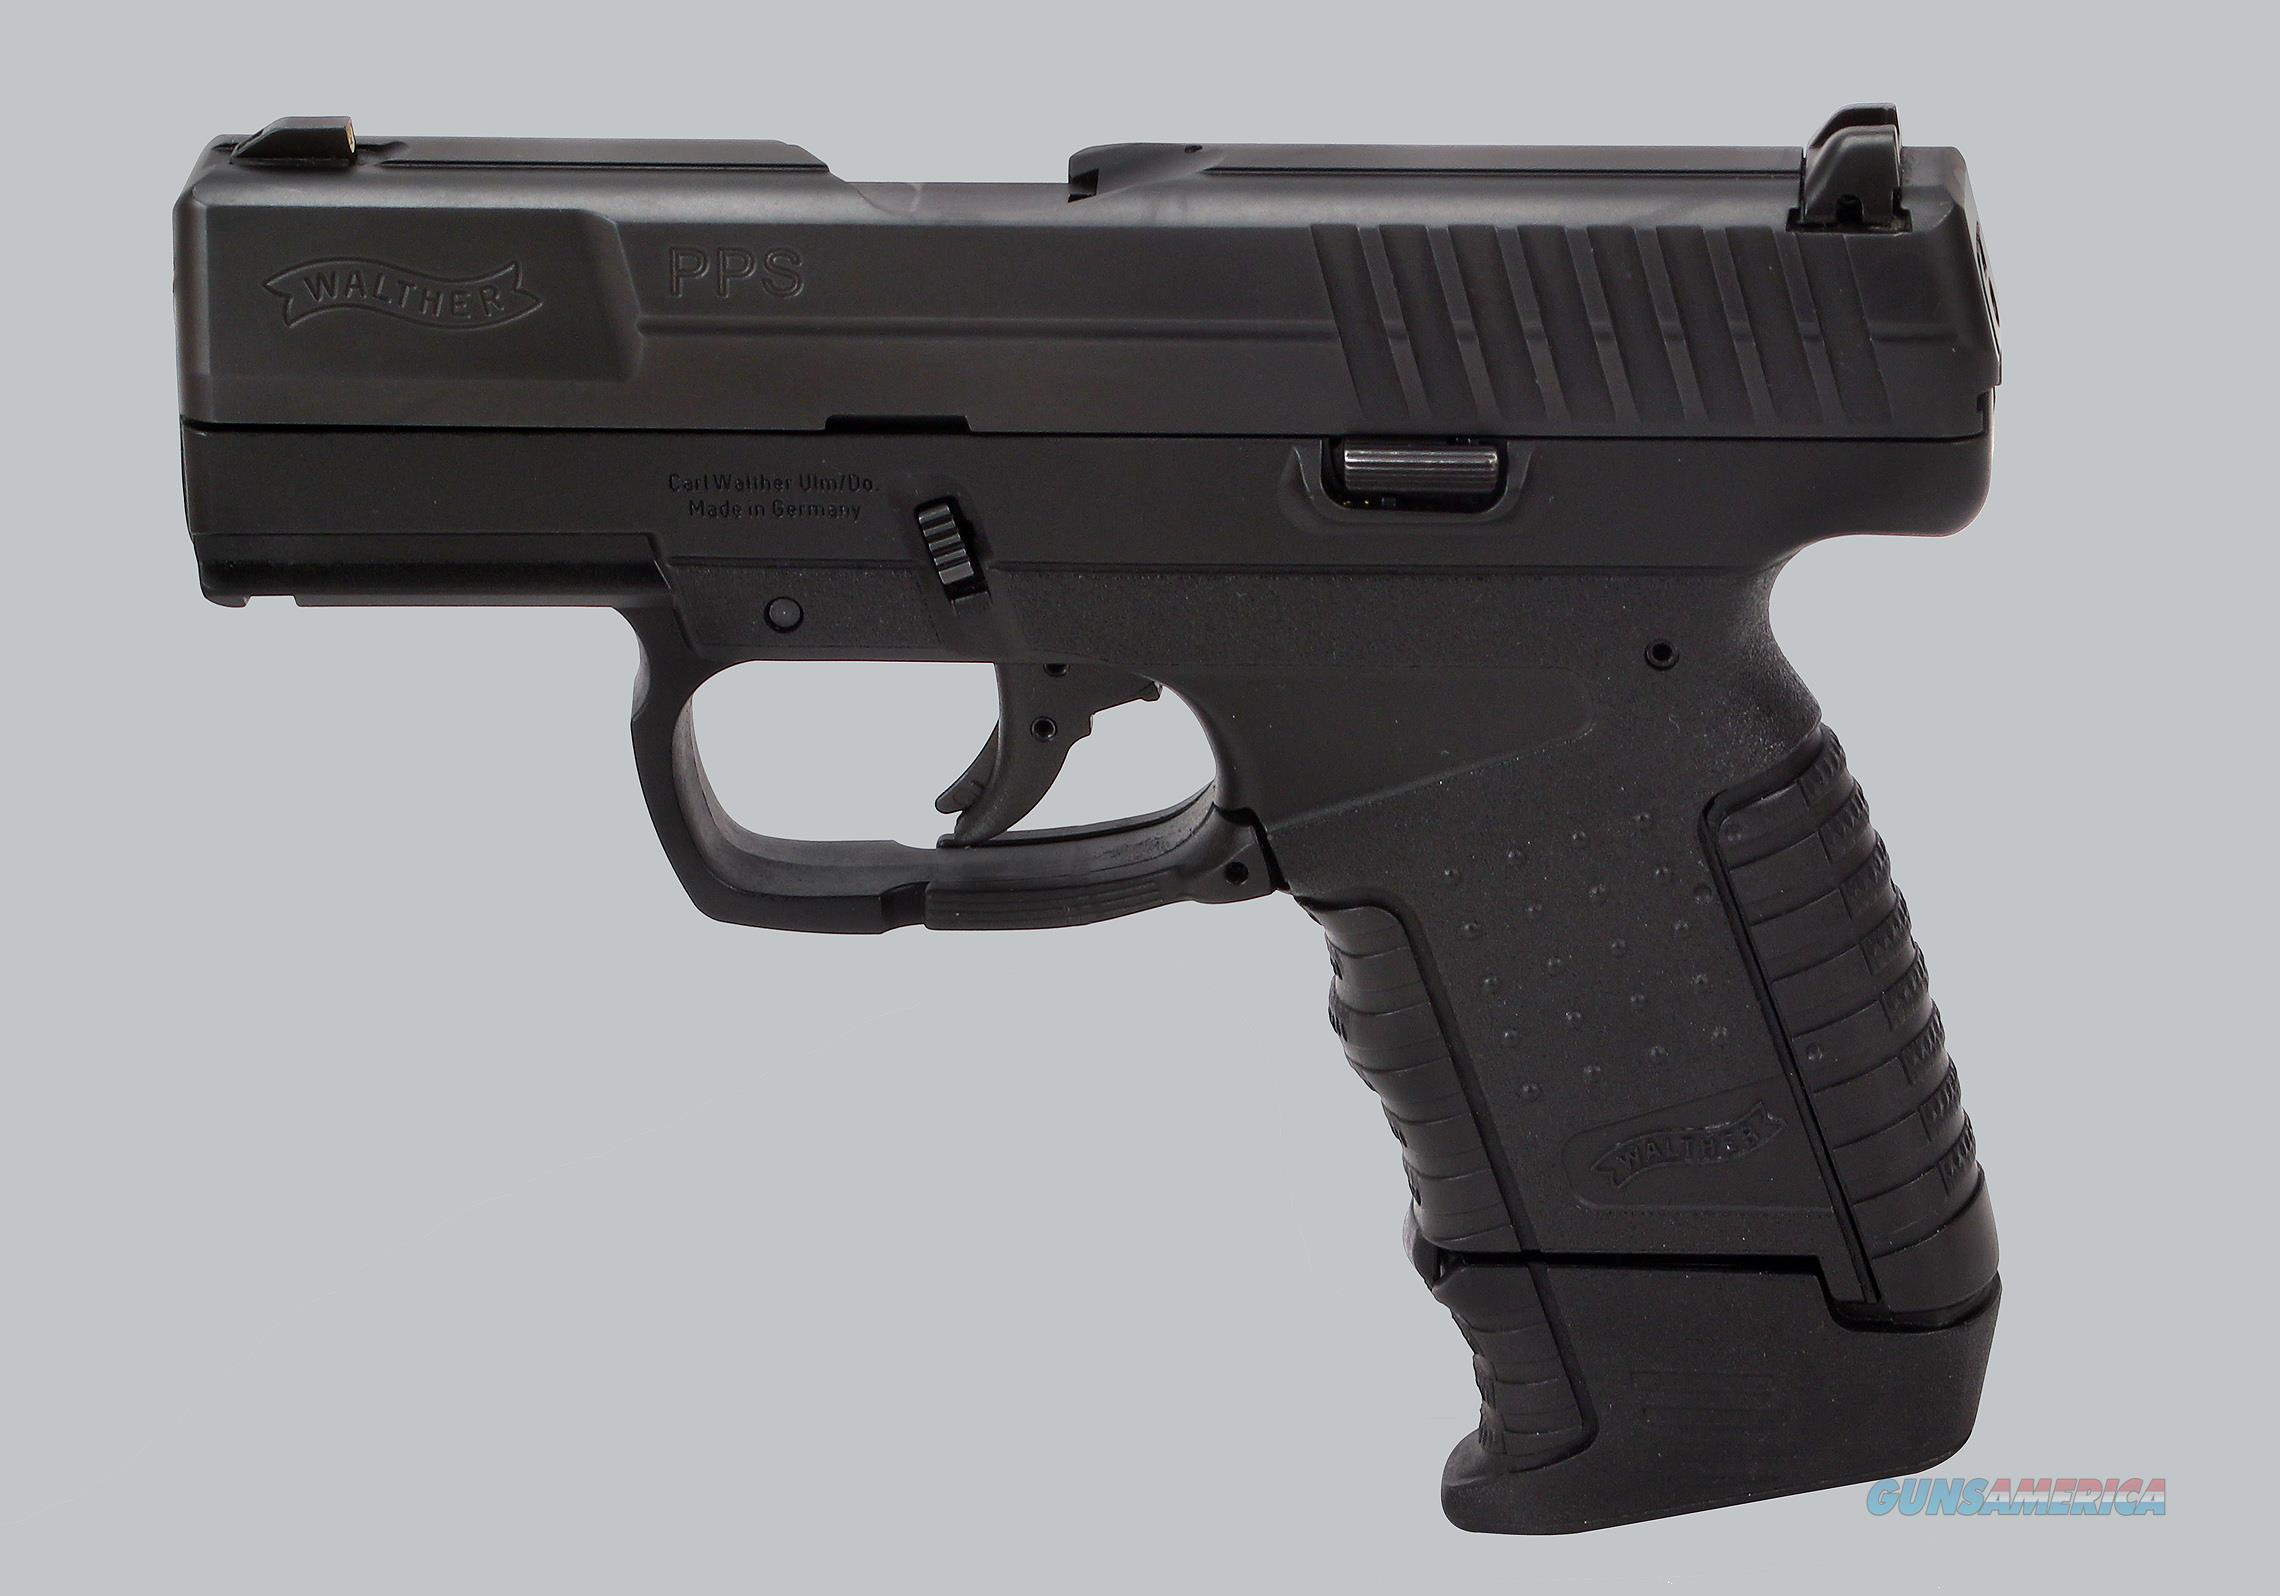 Walther 40 cal S&W PPS Pistol for sale